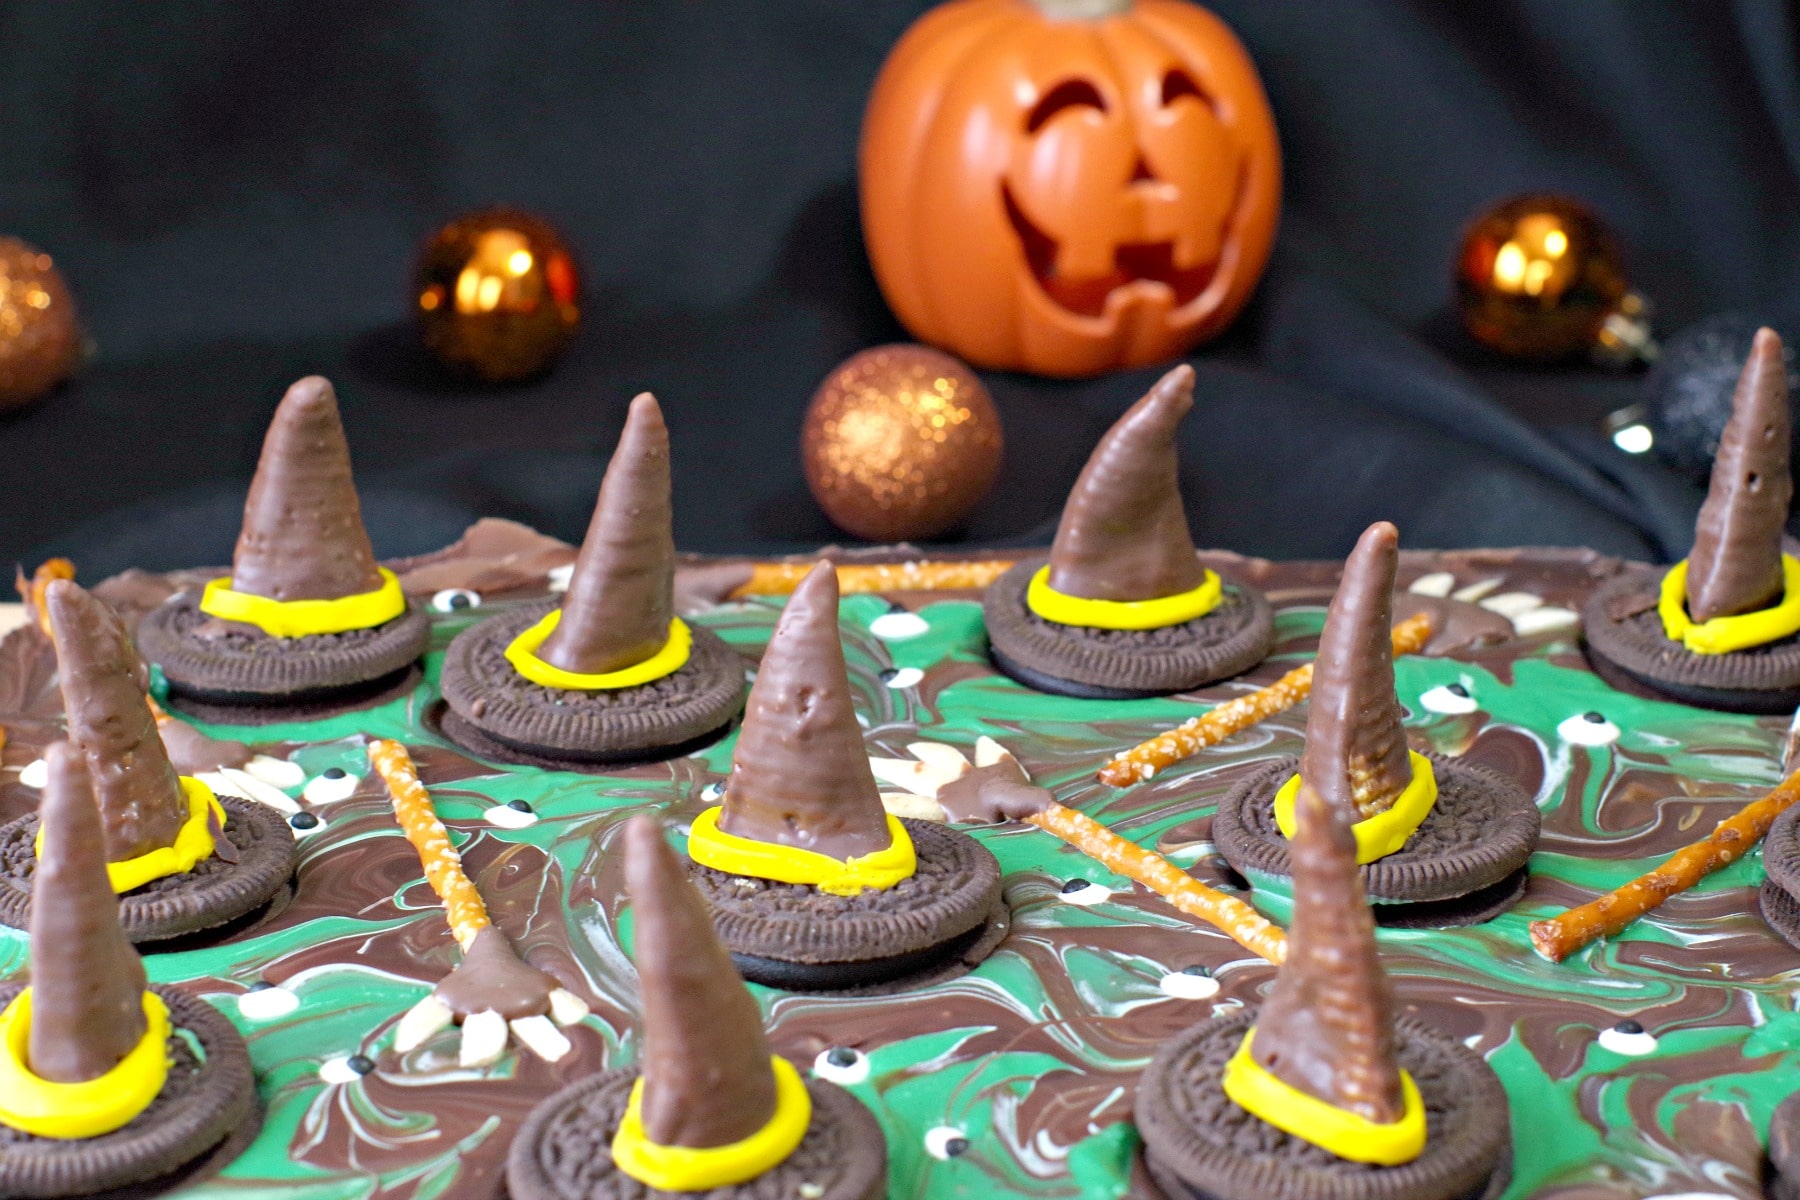 melting witches chocolate Halloween bark with plastic pumpkin in the background